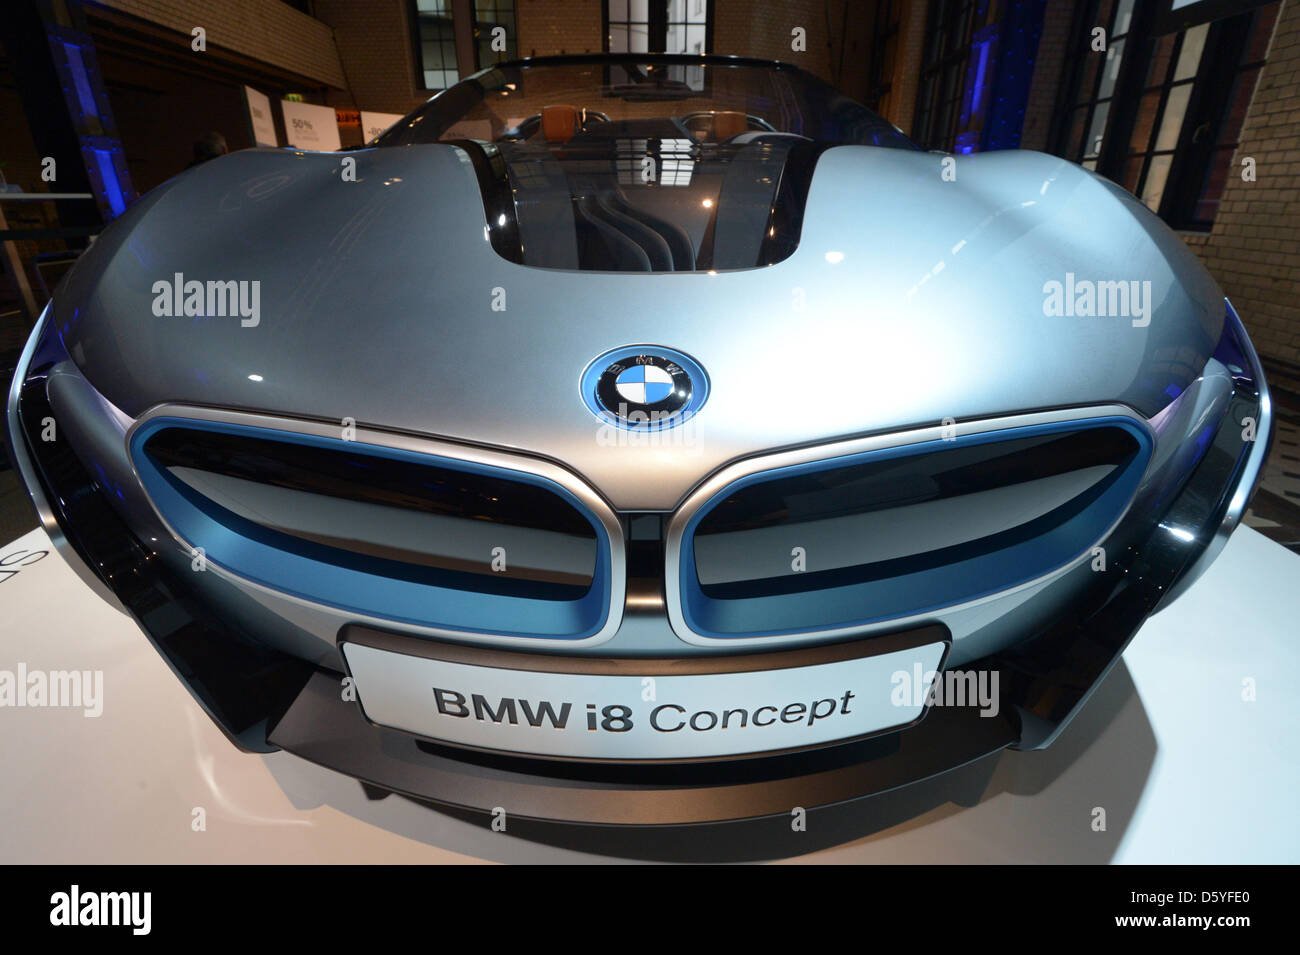 A Bmw I8 Concept Electric Car Is Unveiled At E Werk In Stock Photo